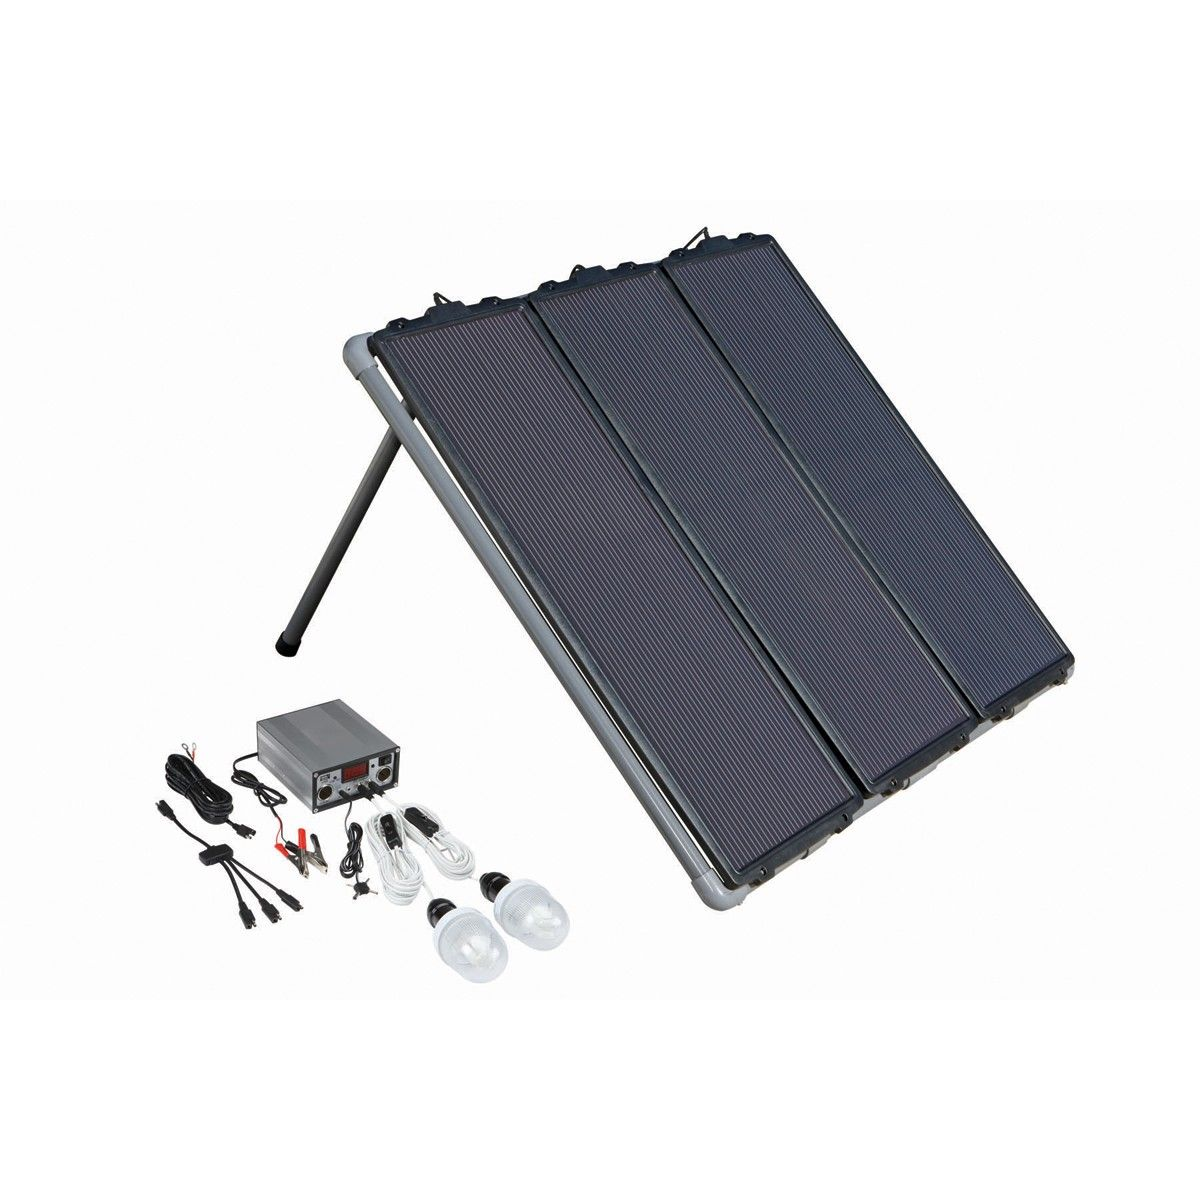 Wow You Just Have To See This Http Greenenergy Nv1q7ctf Popularreviewsonline Com Solar Panel Kits Solar Panels Solar